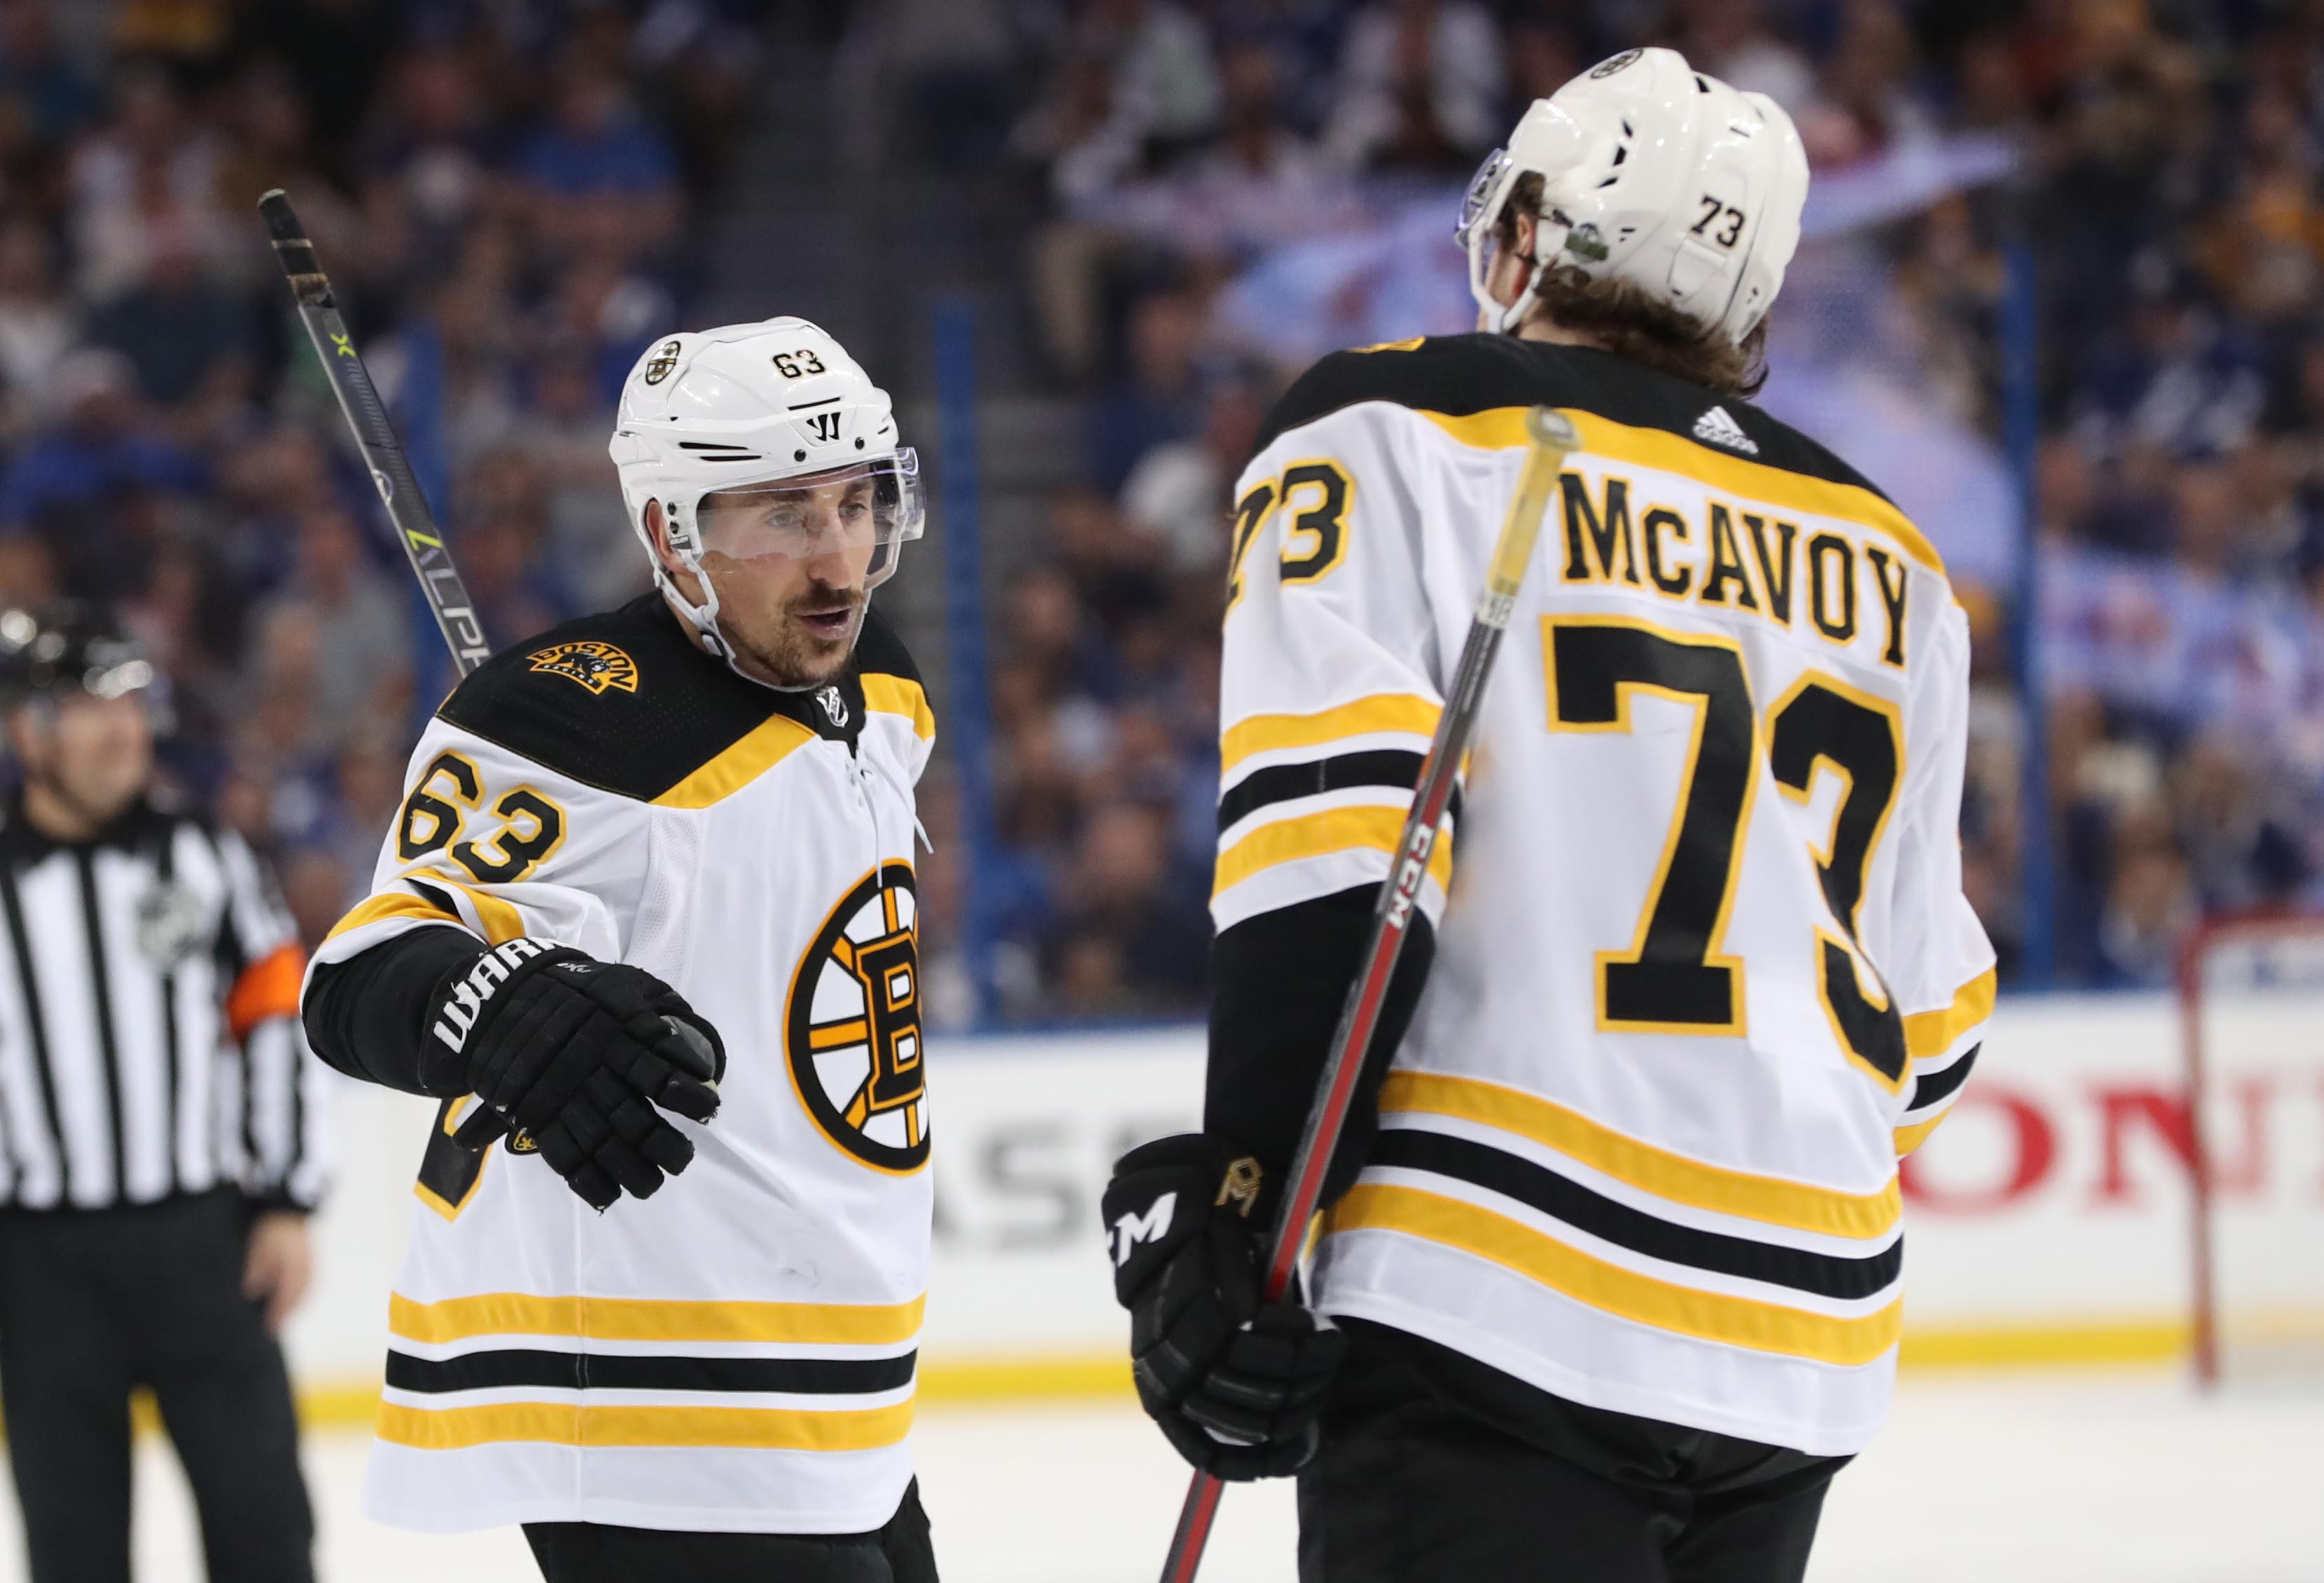 a090c32dc8e Brad Marchand s chat with Charlie McAvoy may be more a sign of Marchand s  emergence as a leader than a problem with McAvoy s punctuality